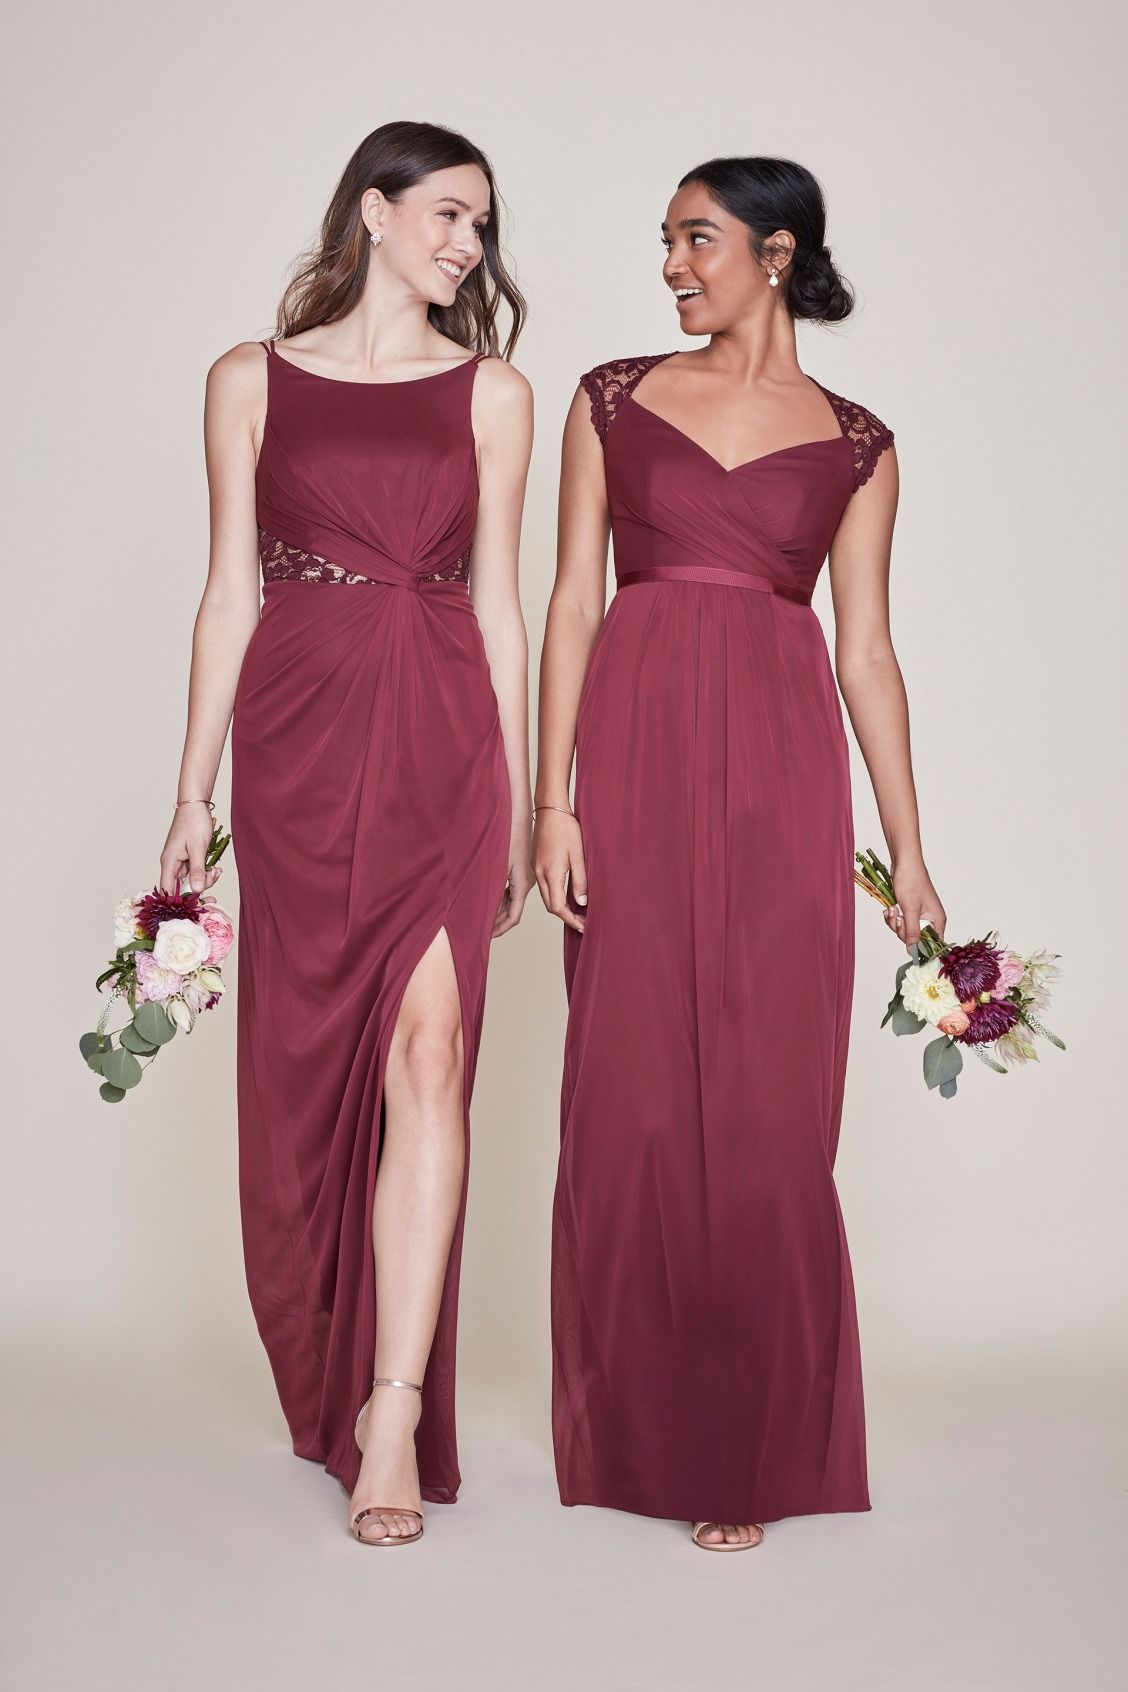 Wine Lace Bridesmaid Dresses For The Burgundy Wedding You